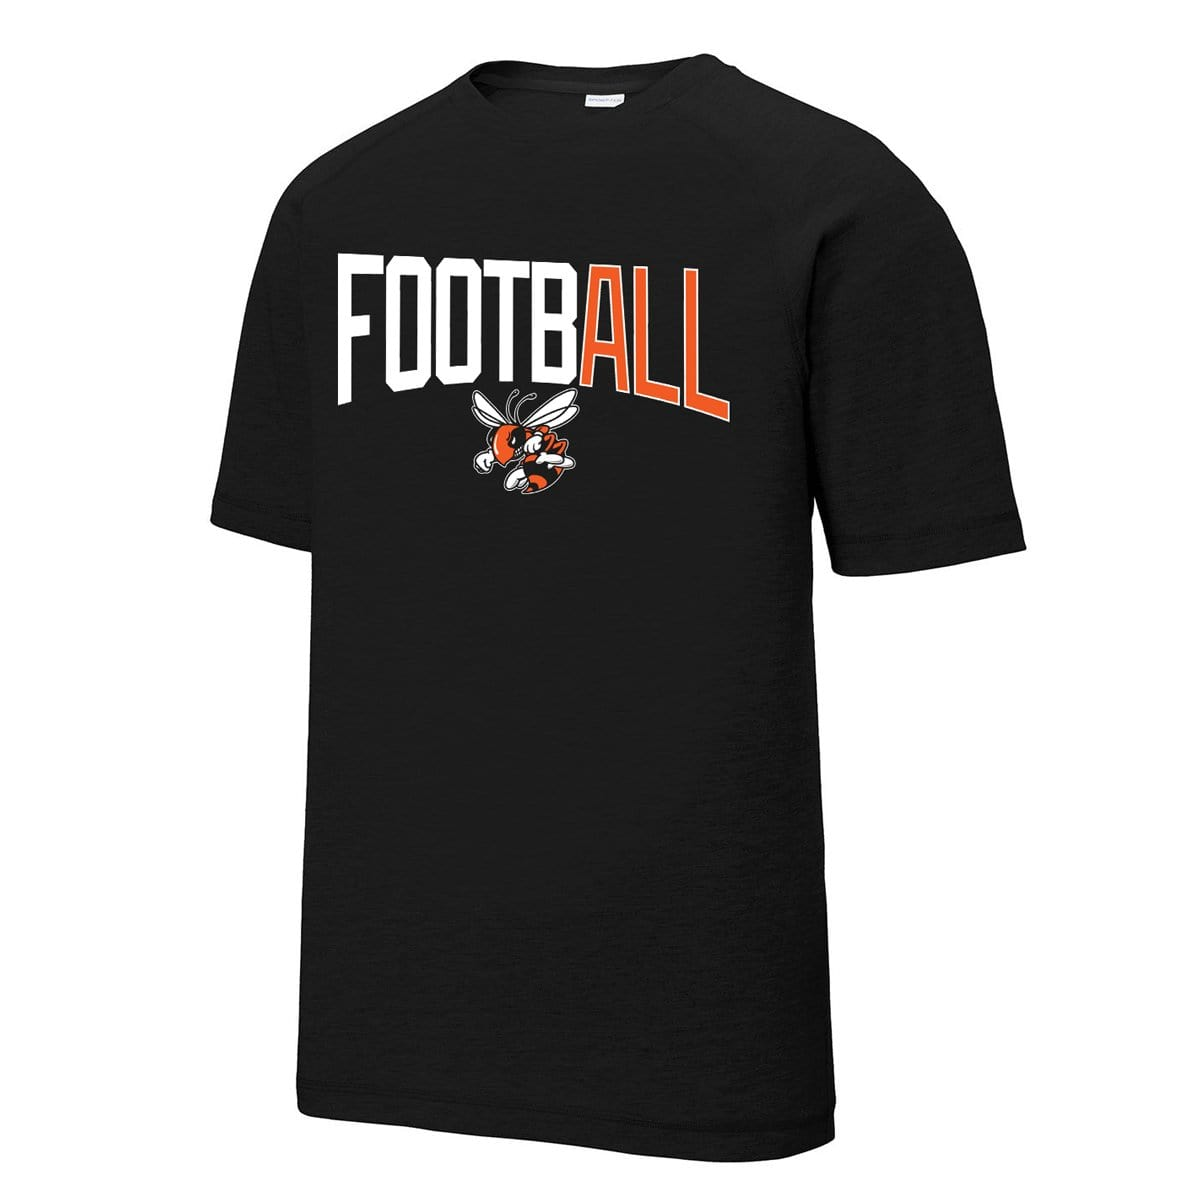 Rockwall Footb(all)